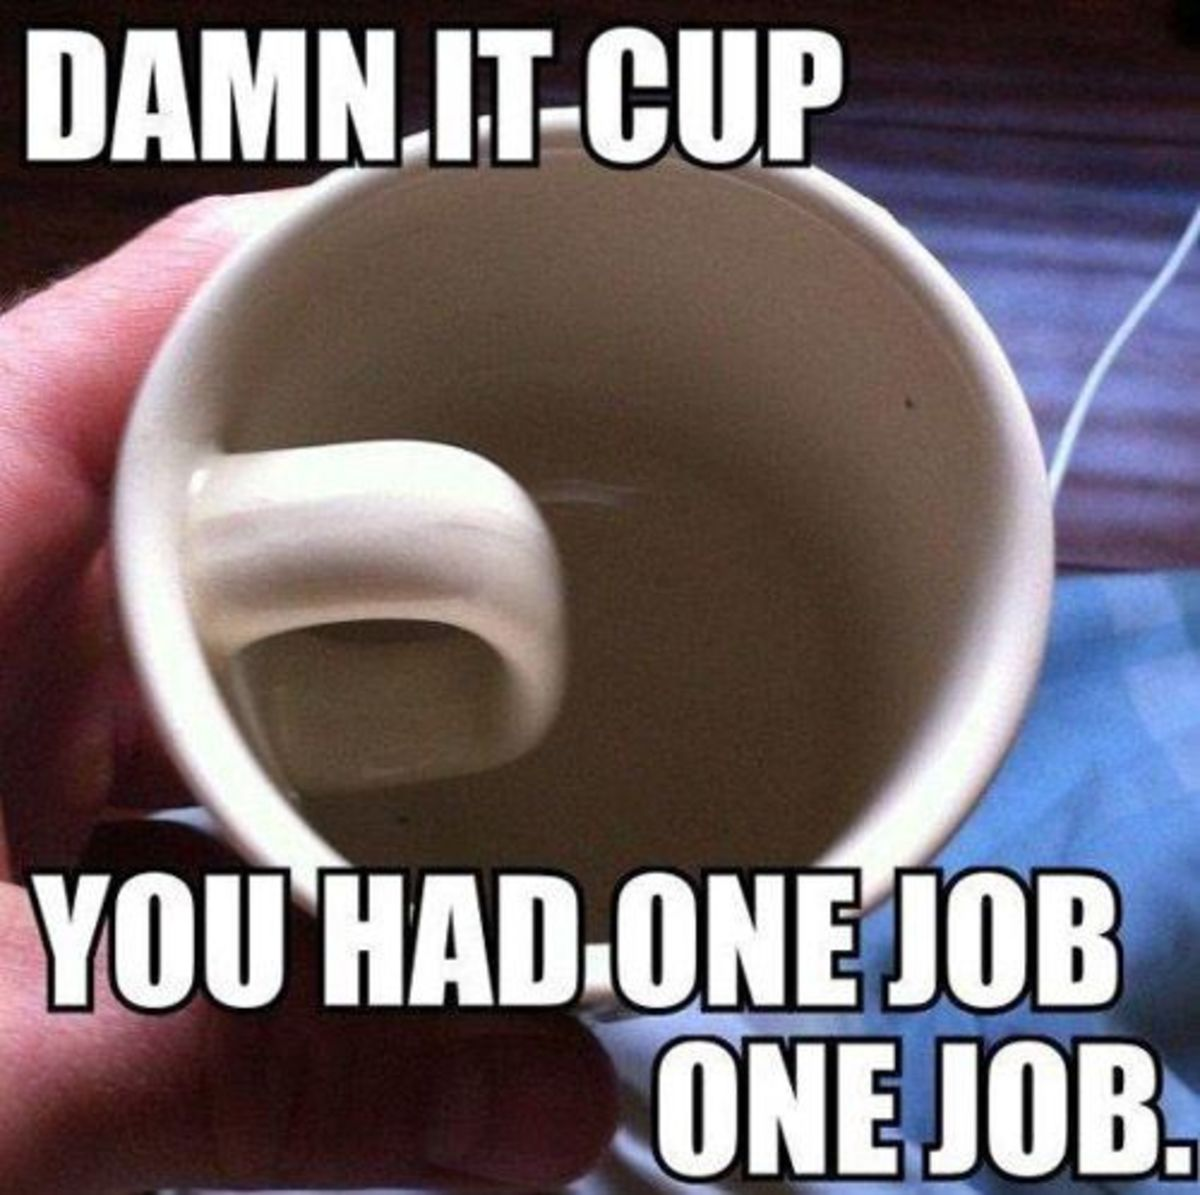 This has to be a joke, right?   A glitch with the mug machine or operator?  The whole reason behind having a cup, which is to drink fluid by holding the handle, just seems to have been overlooked.